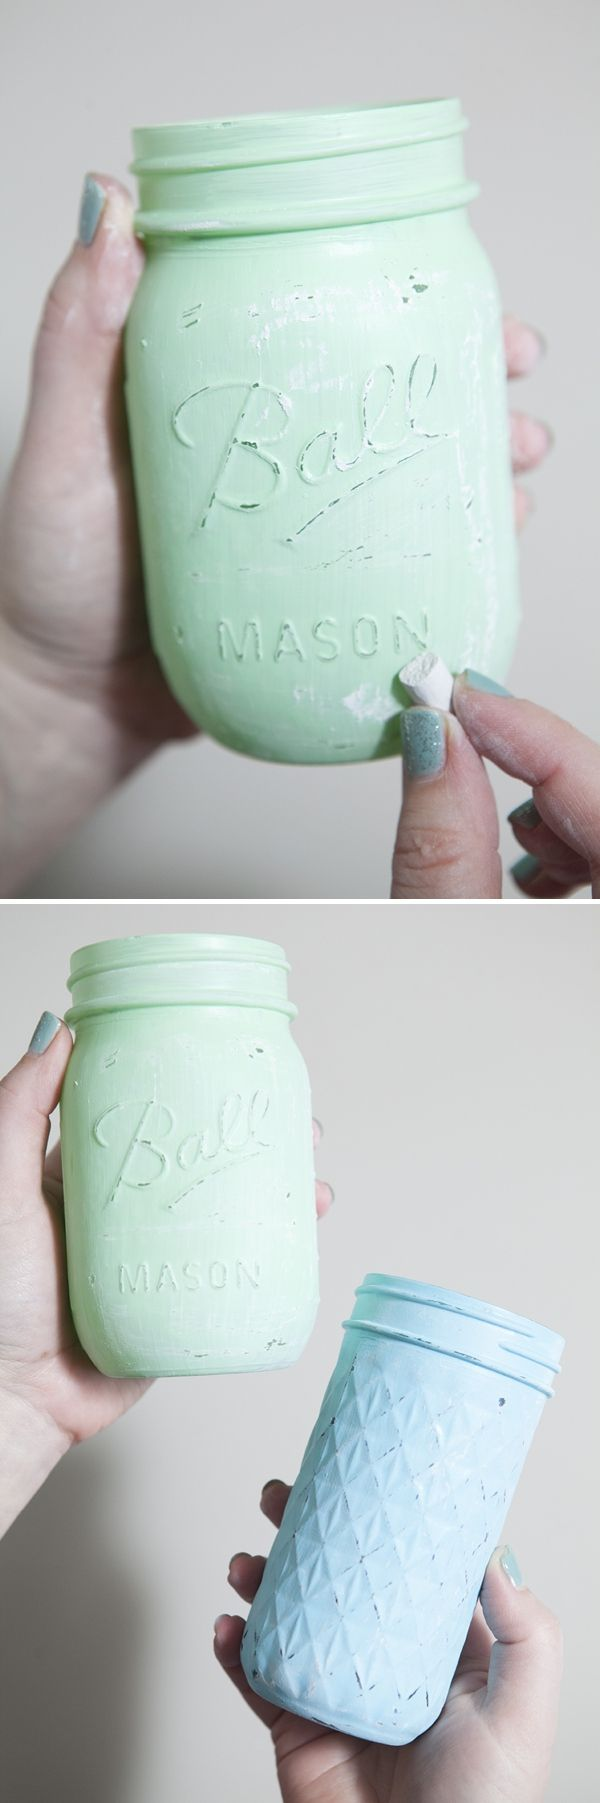 Check out this easy to follow, step by step tutorial for creating your very own distressed chalkboard mason jars ~ perfect for wedding or party decor!